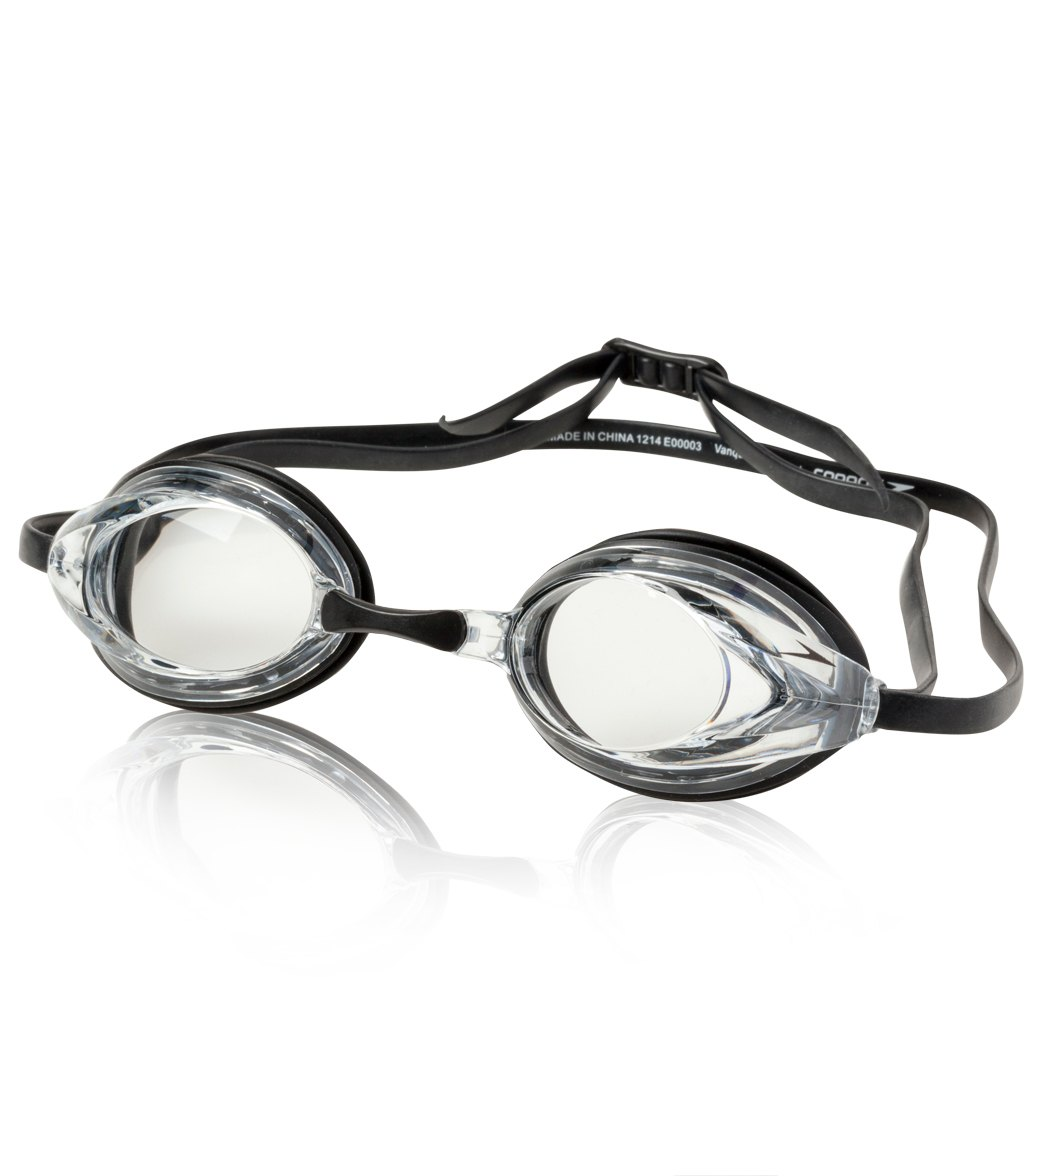 208abb91b49e7 Speedo Vanquisher Optical Goggle at SwimOutlet.com